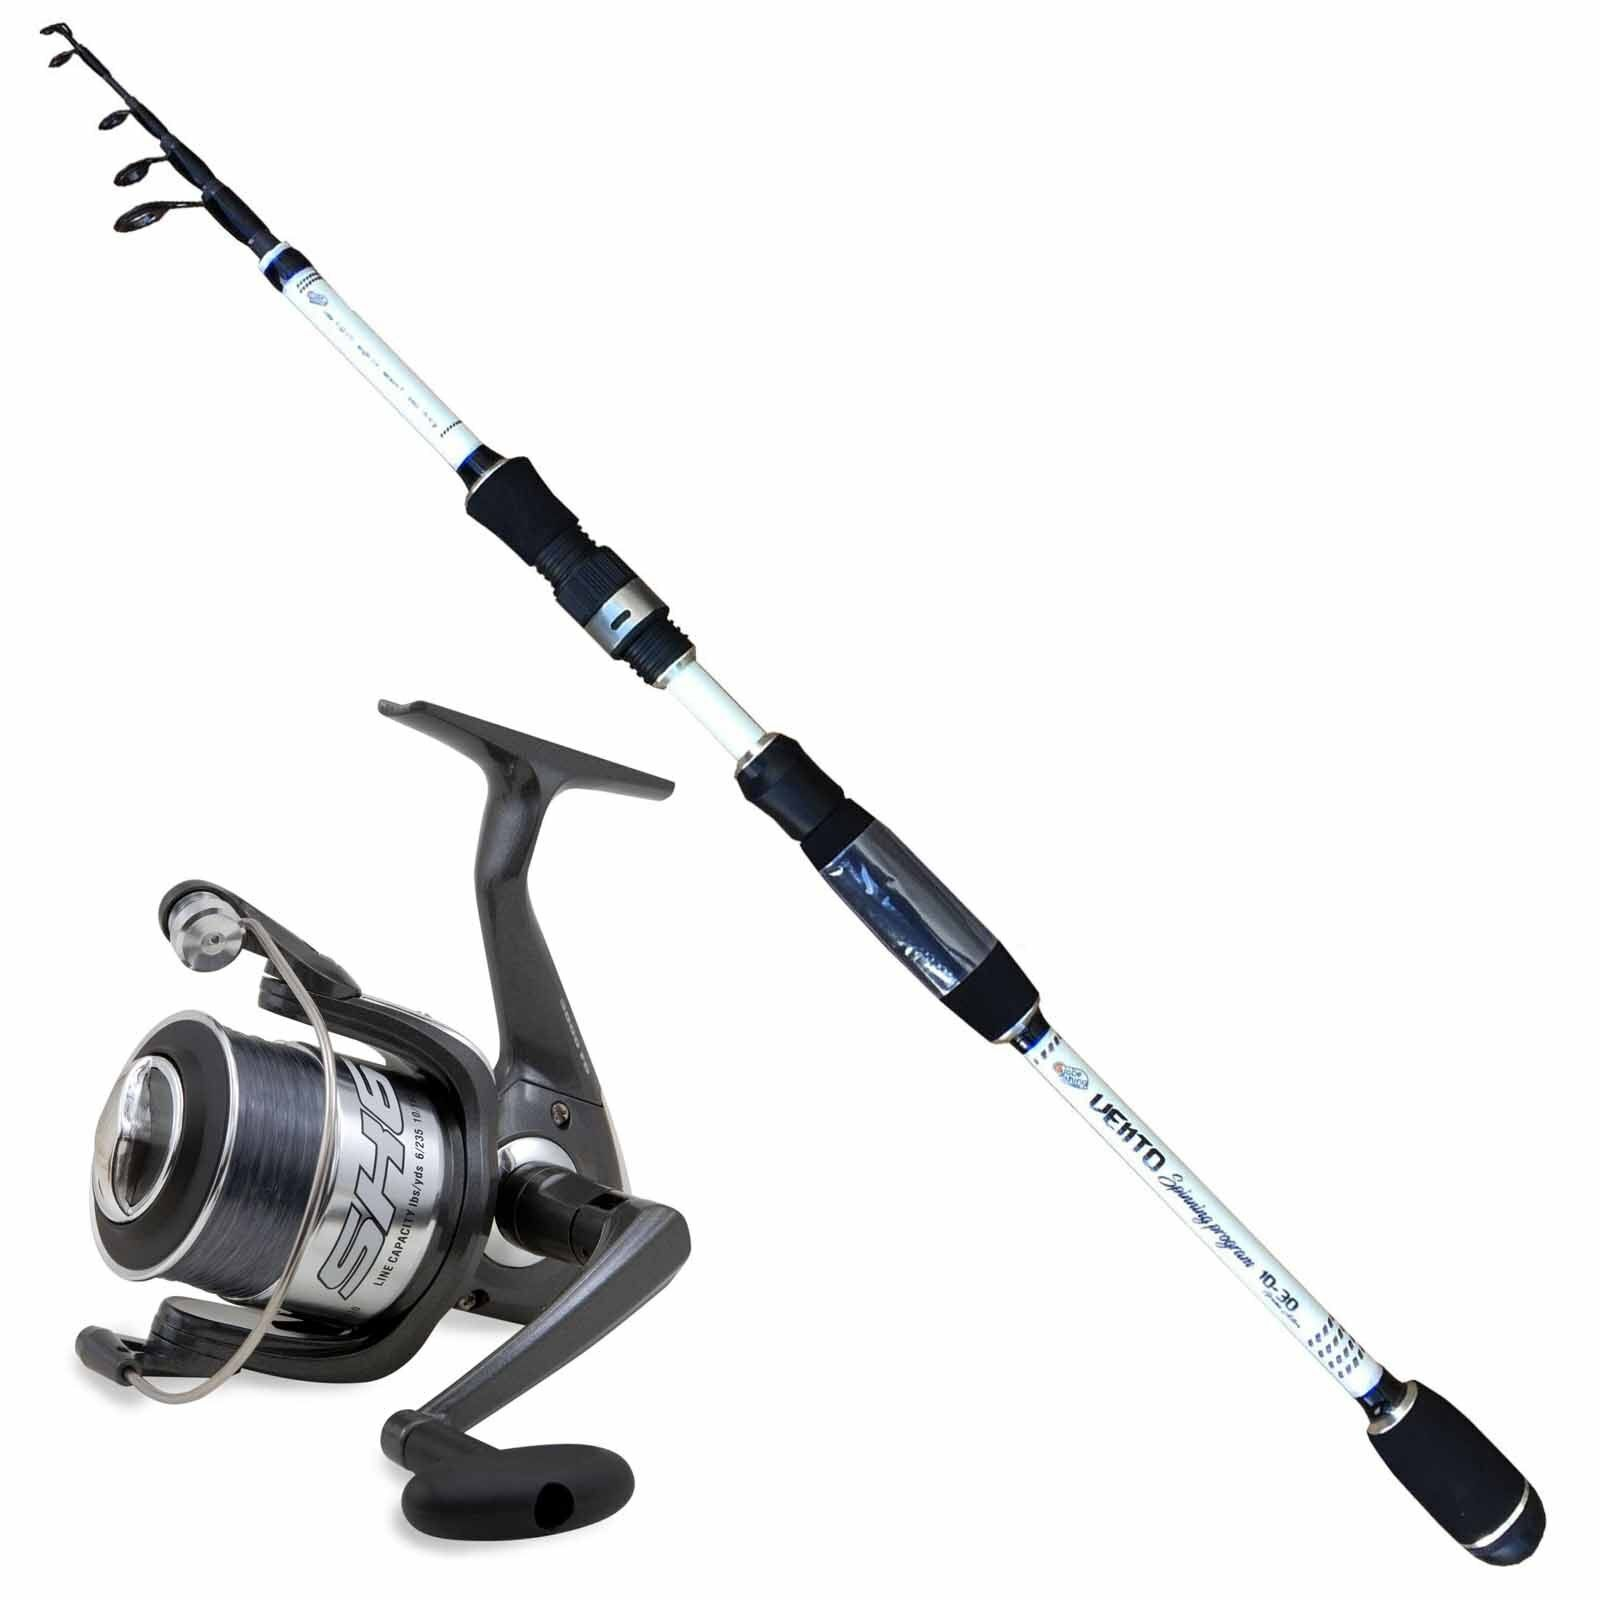 KP3452 Kit Pesca Spinning Canna Vento 2,40 m 10-30 Gr + Mulinello SK6 3000 PP